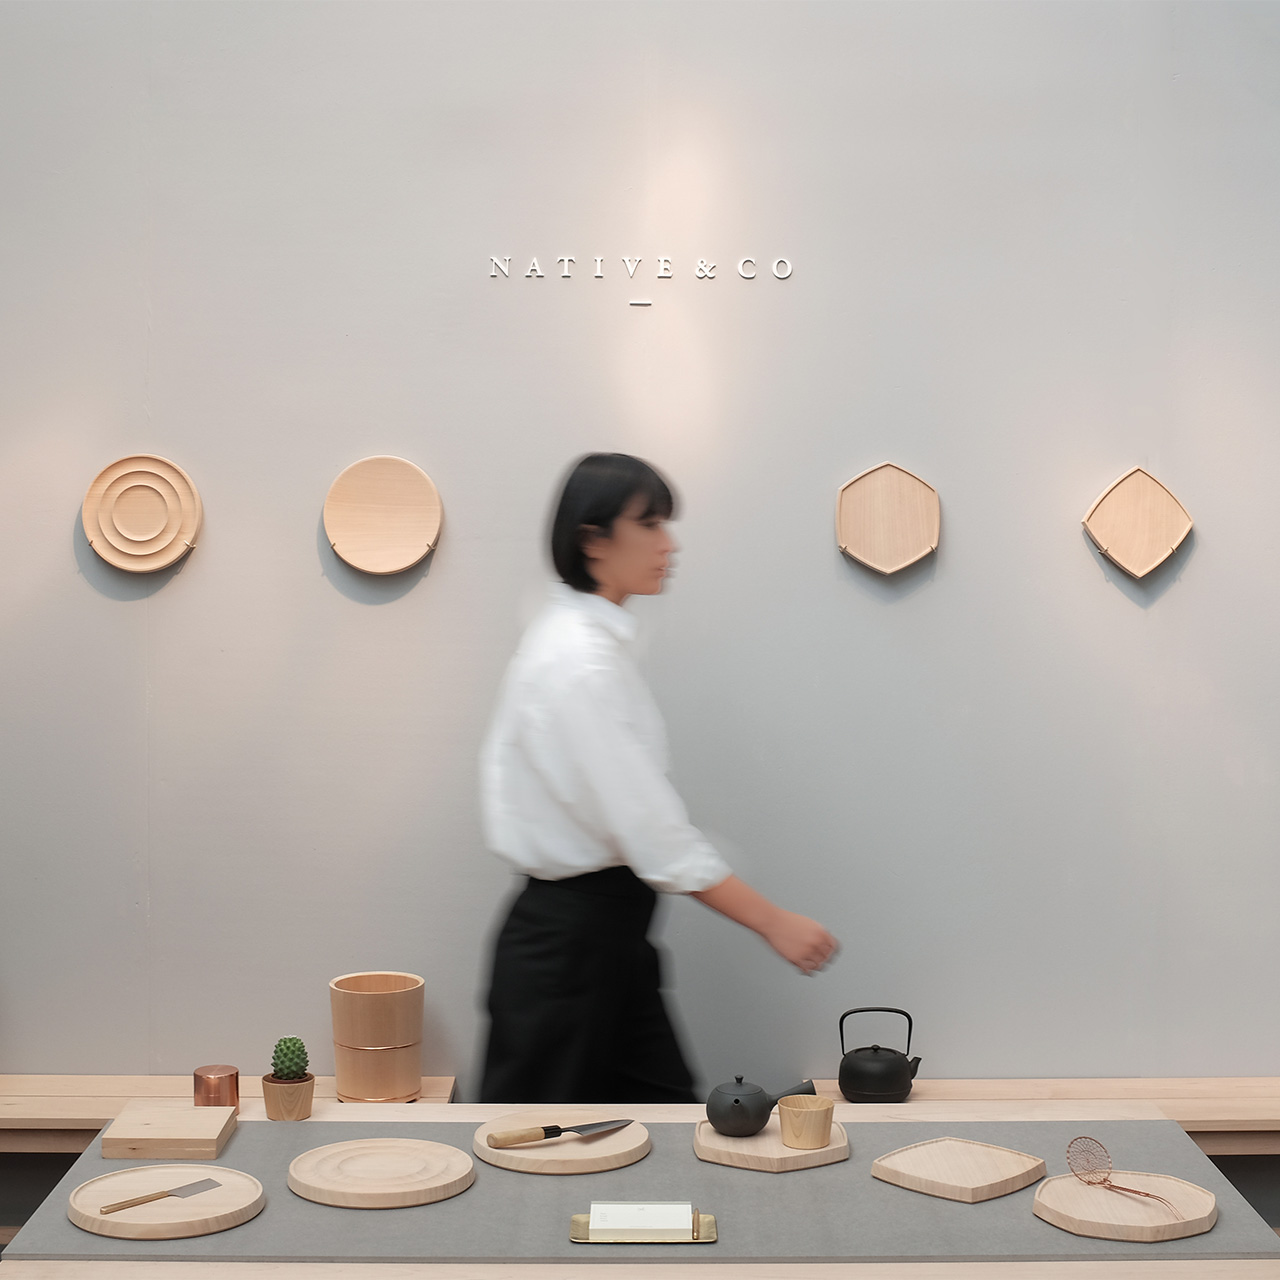 Native Co Combine Craft And Design To Promote Japanese And